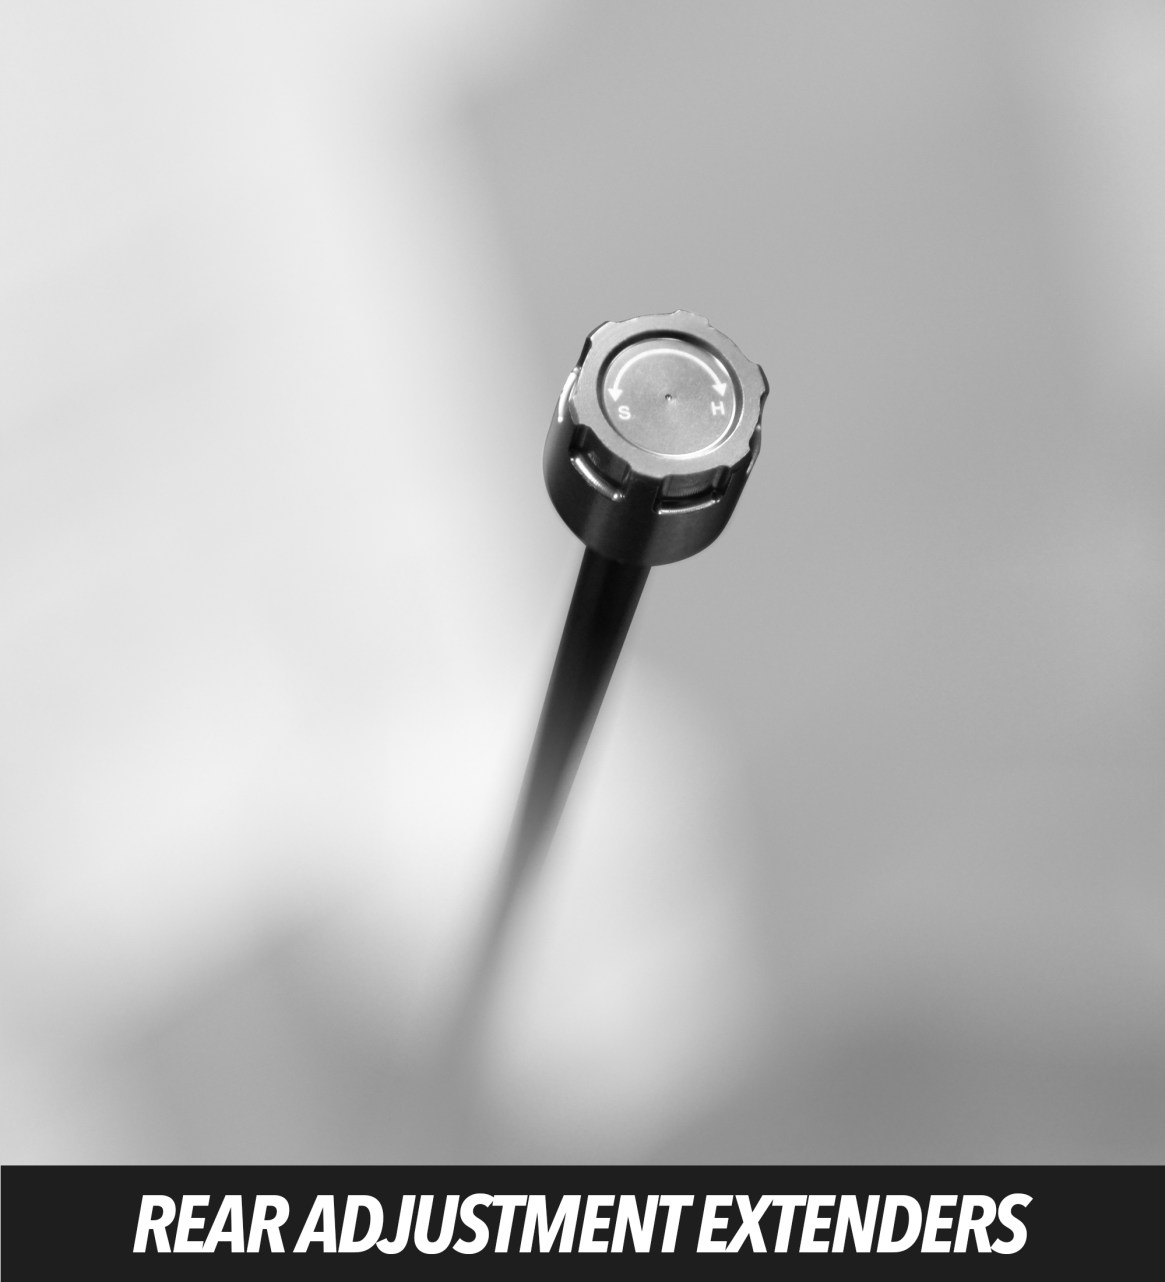 coilover adjustment extenders